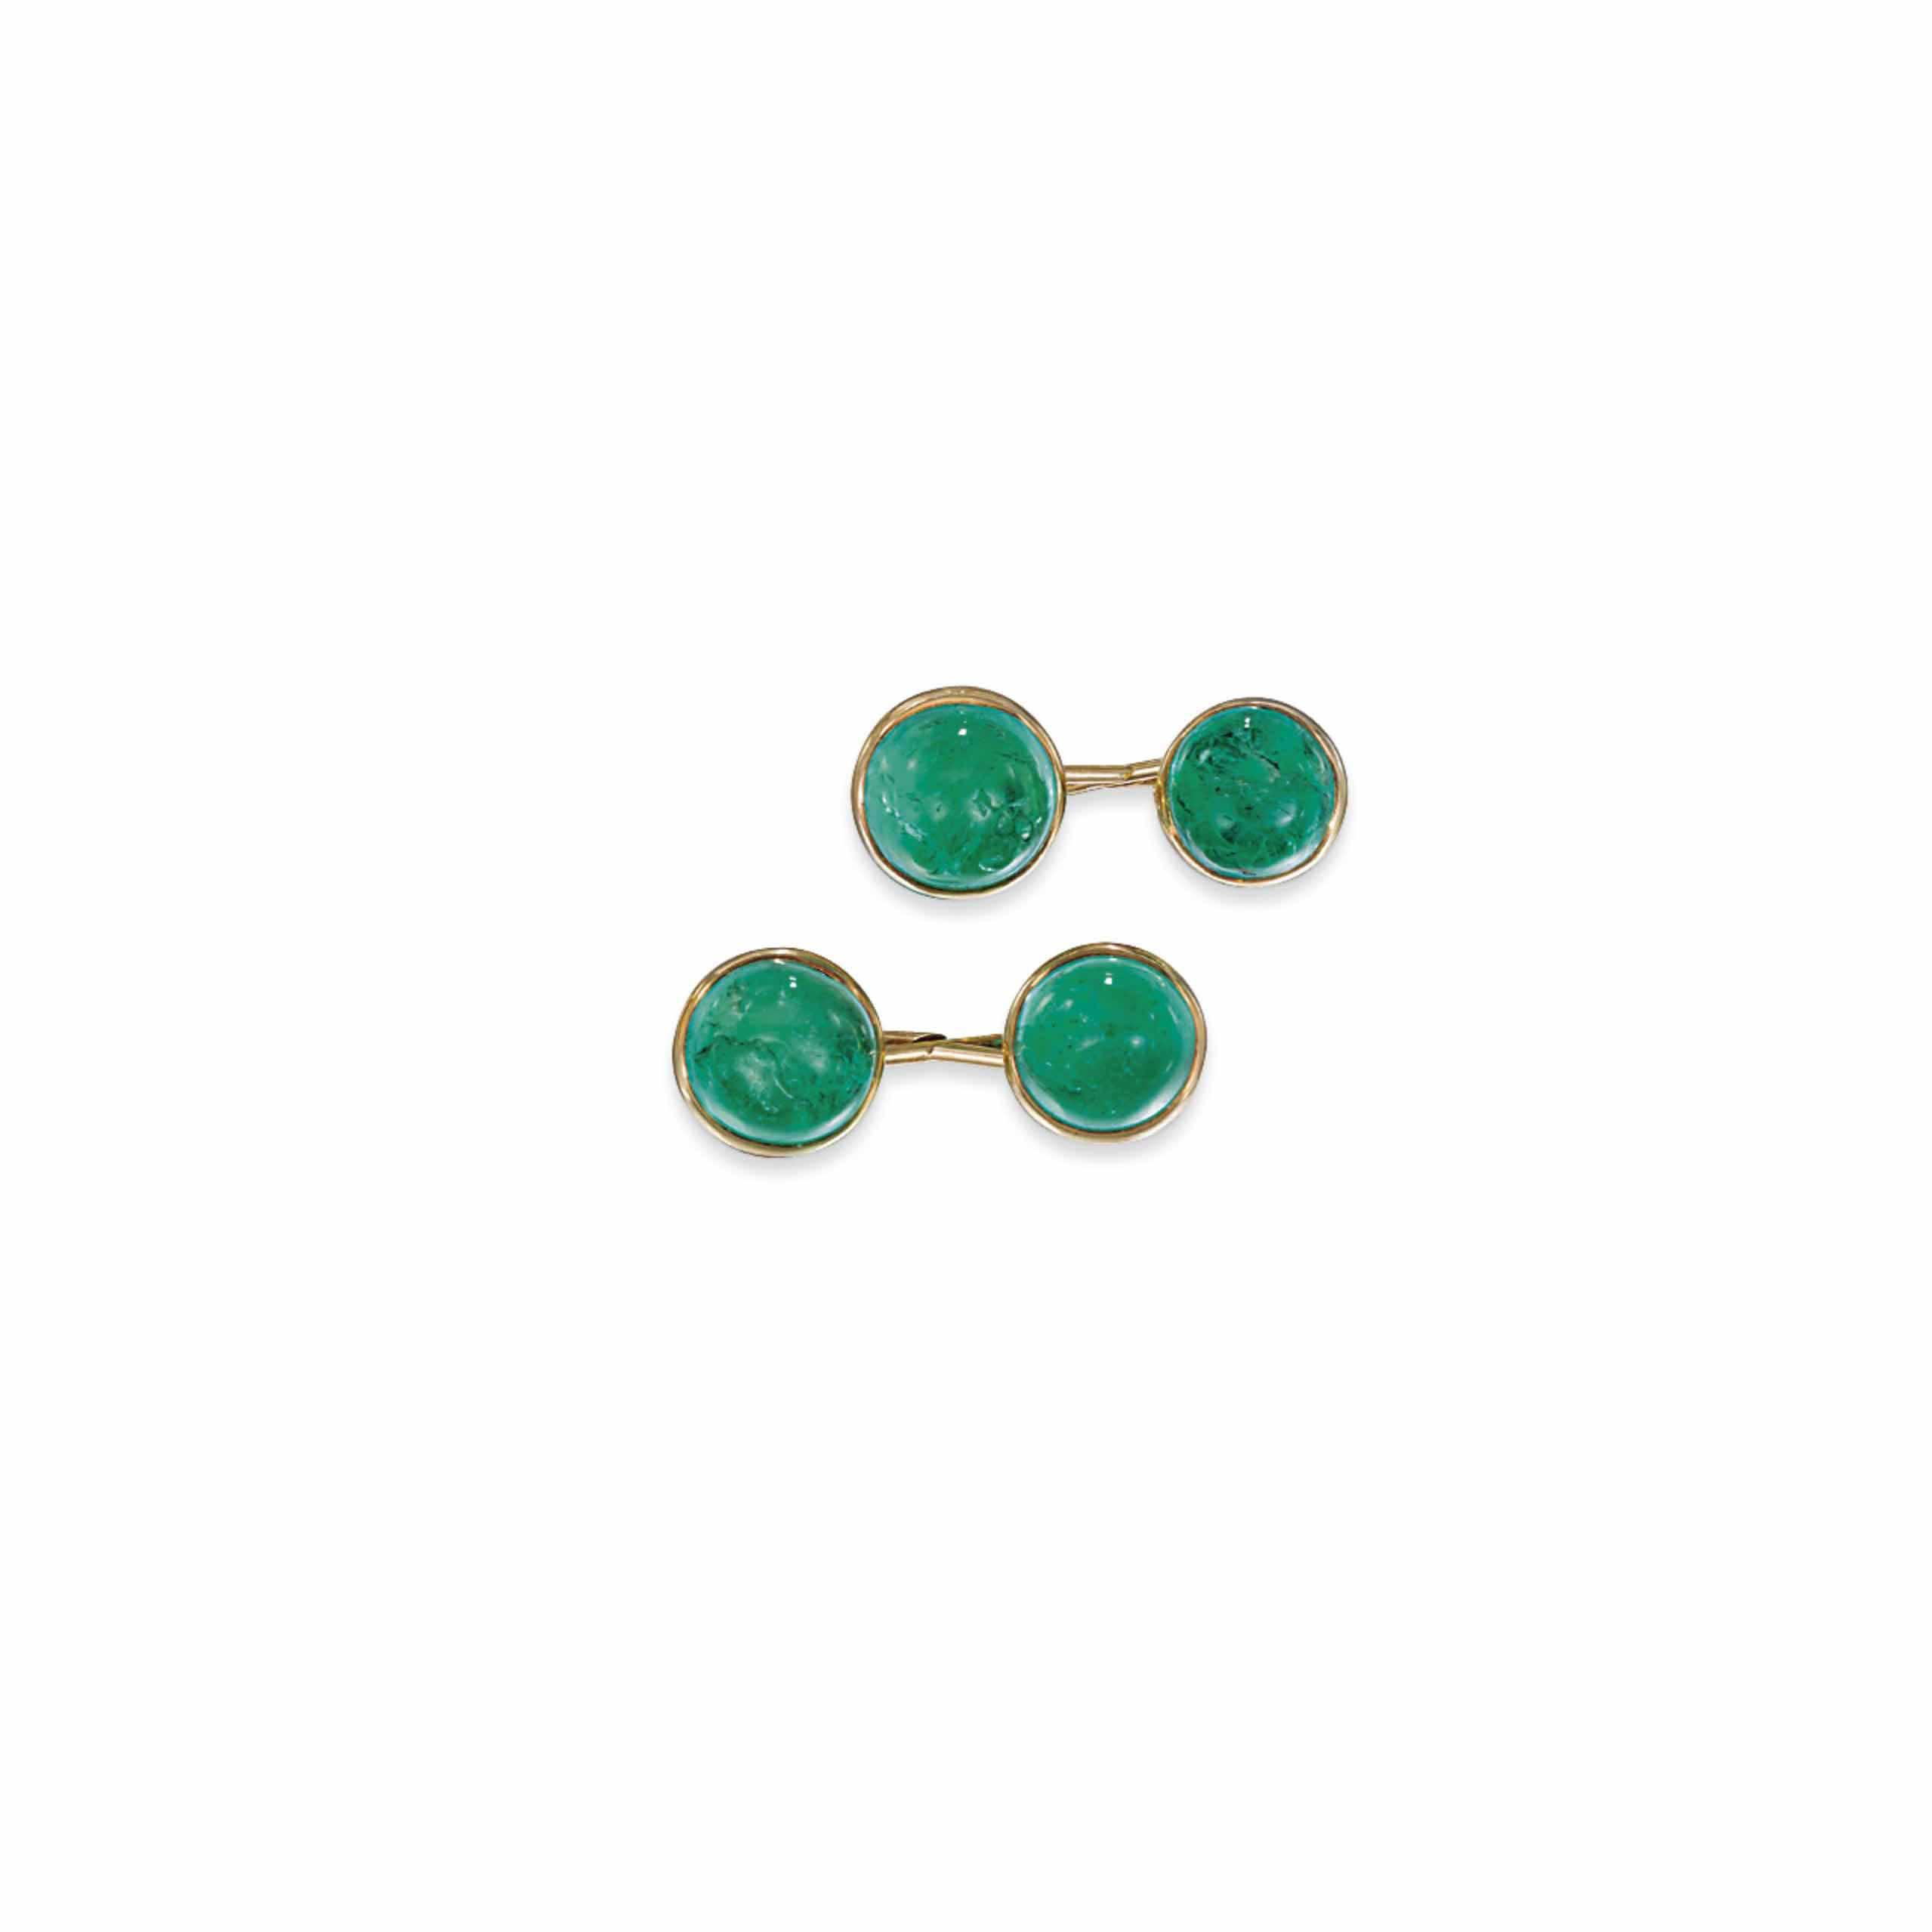 A PAIR OF EARLY 20TH CENTURY EMERALD CUFFLINKS, BY BLACK STARR & FROST